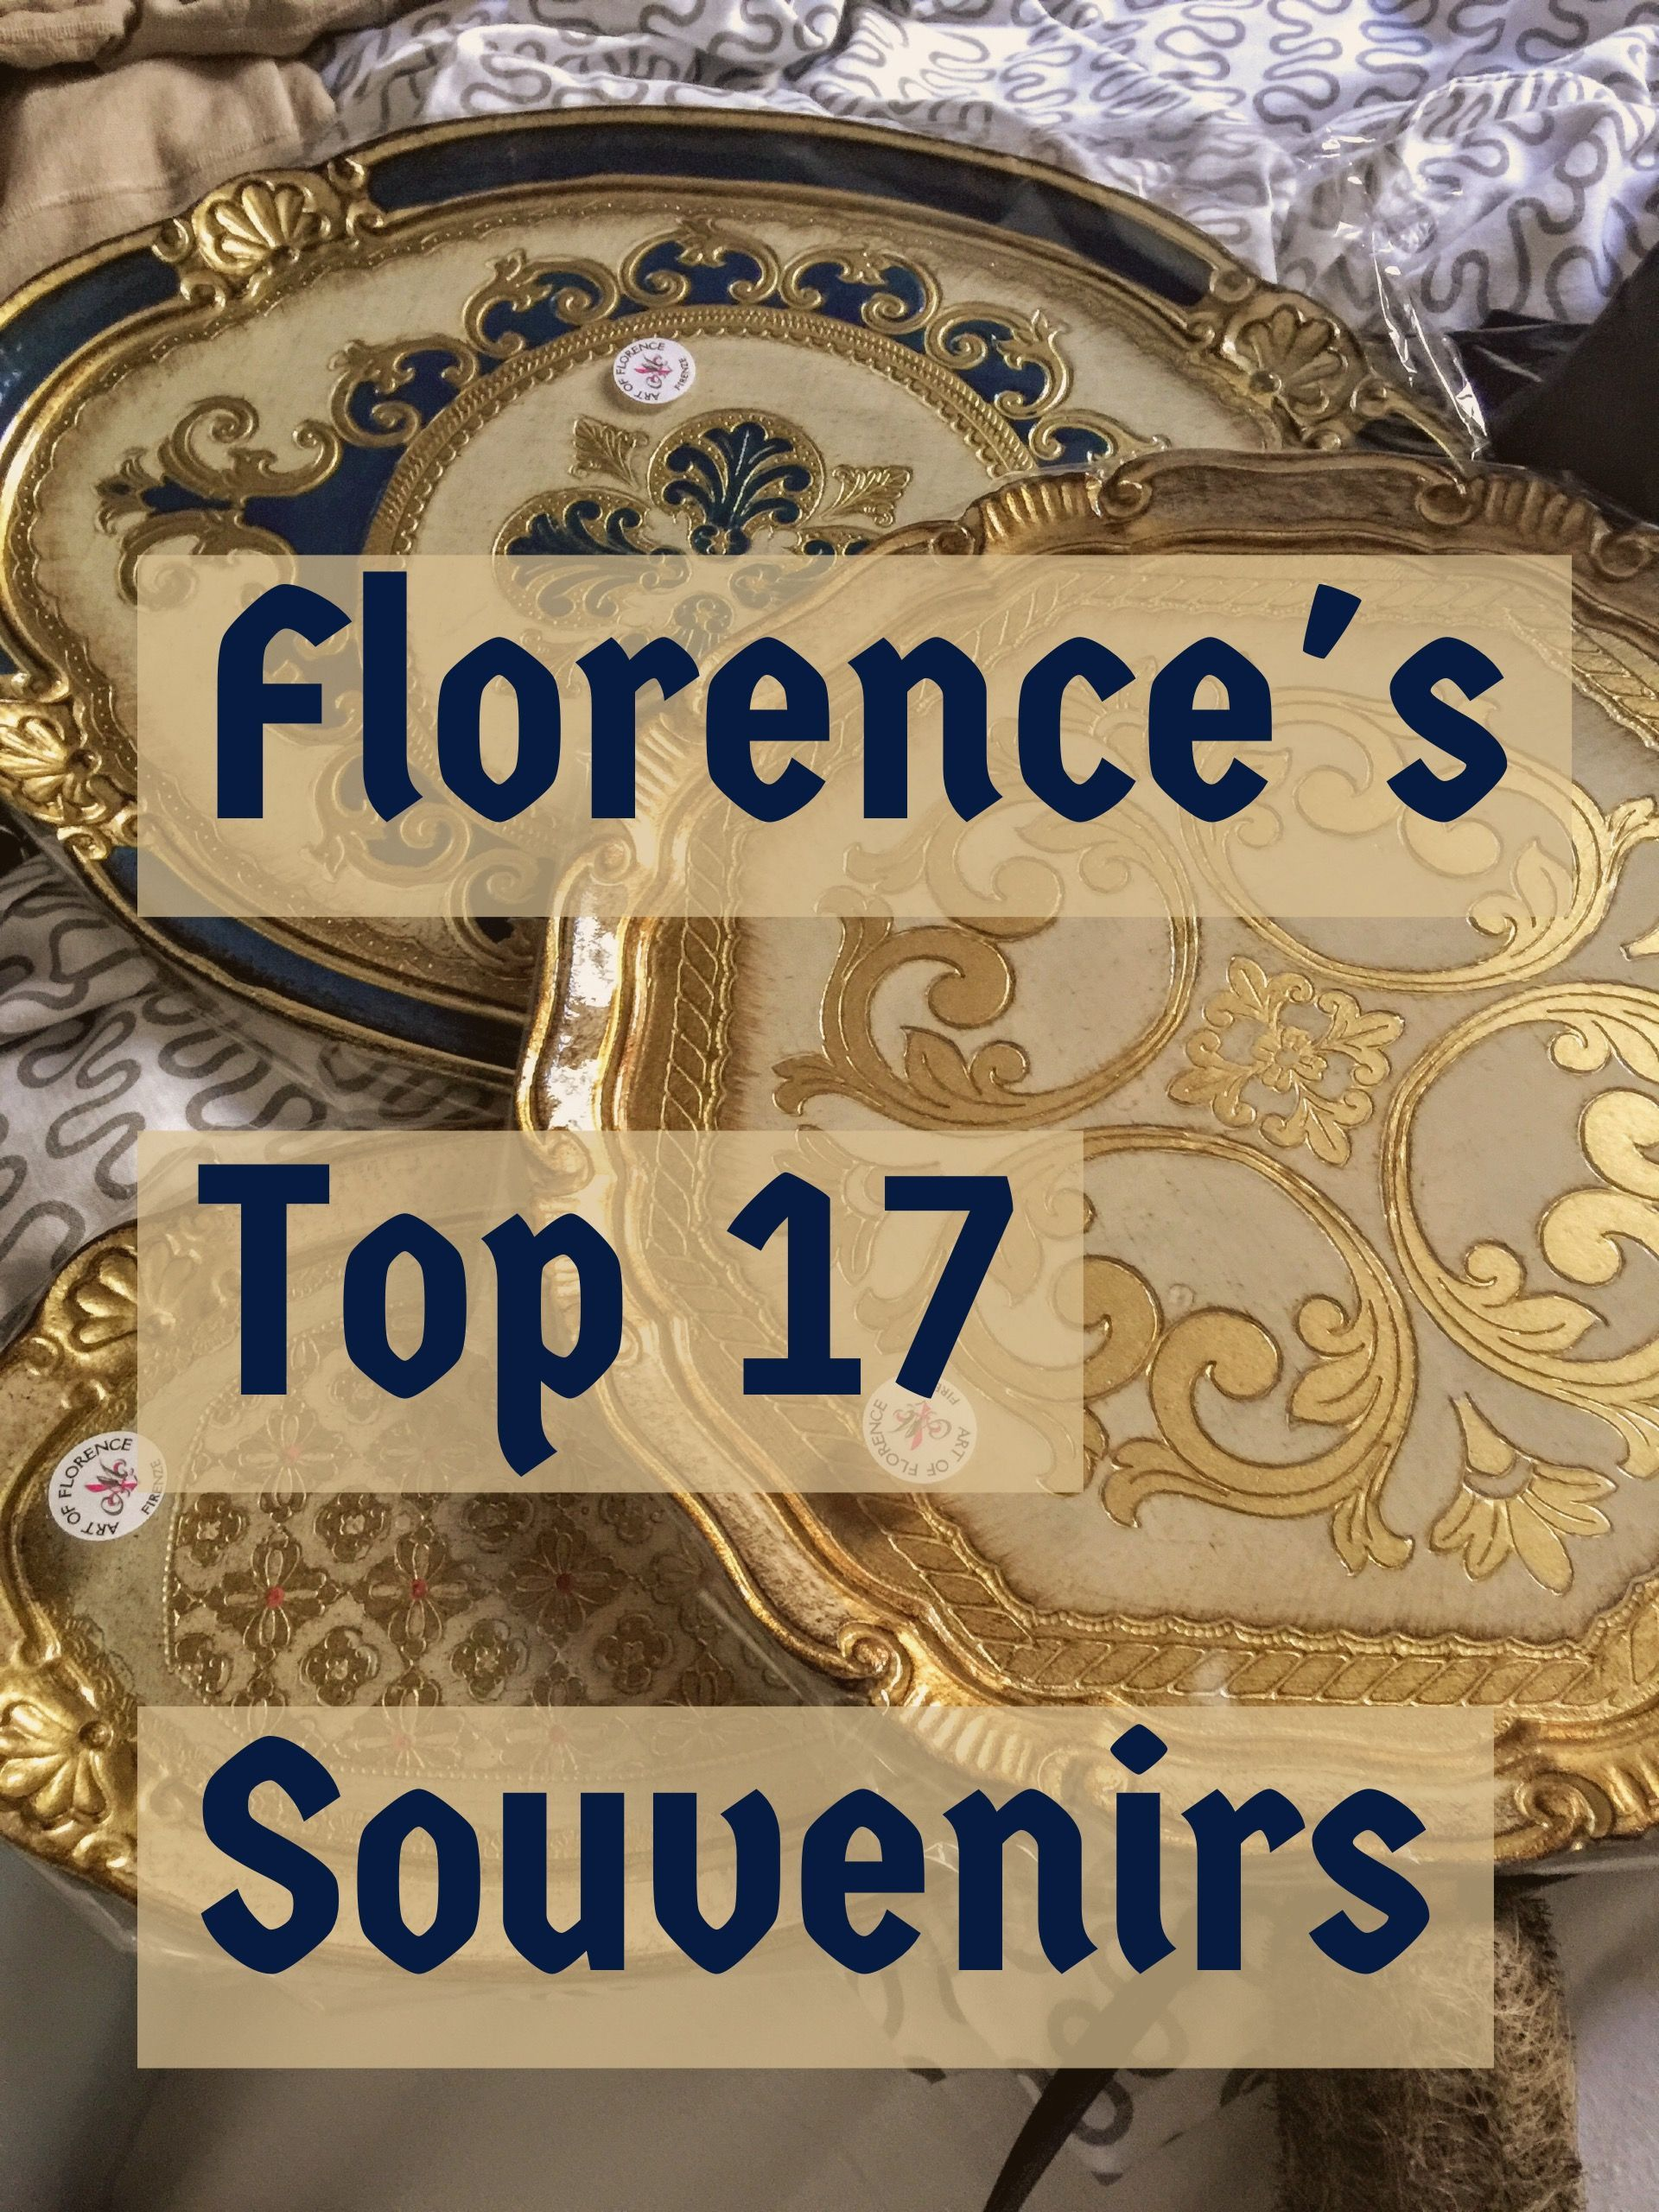 Best 17 travel souvenirs from Florence Italy